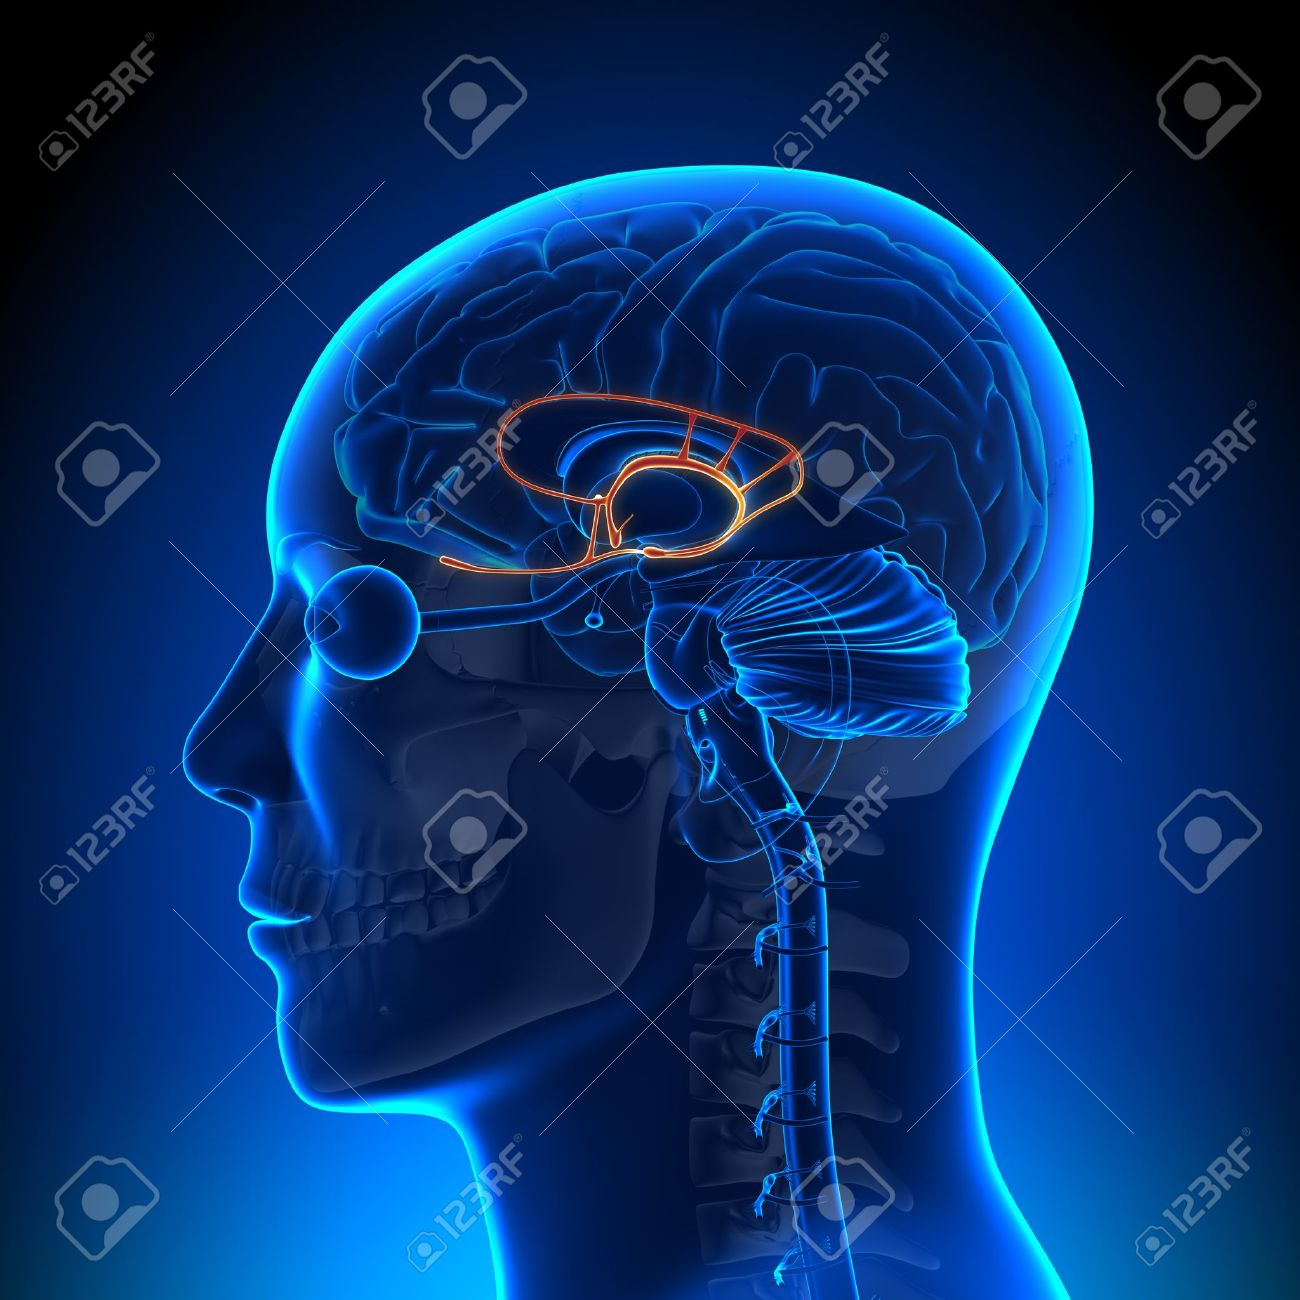 Brain Anatomy Limbic System Stock Photo, Picture And Royalty Free ...